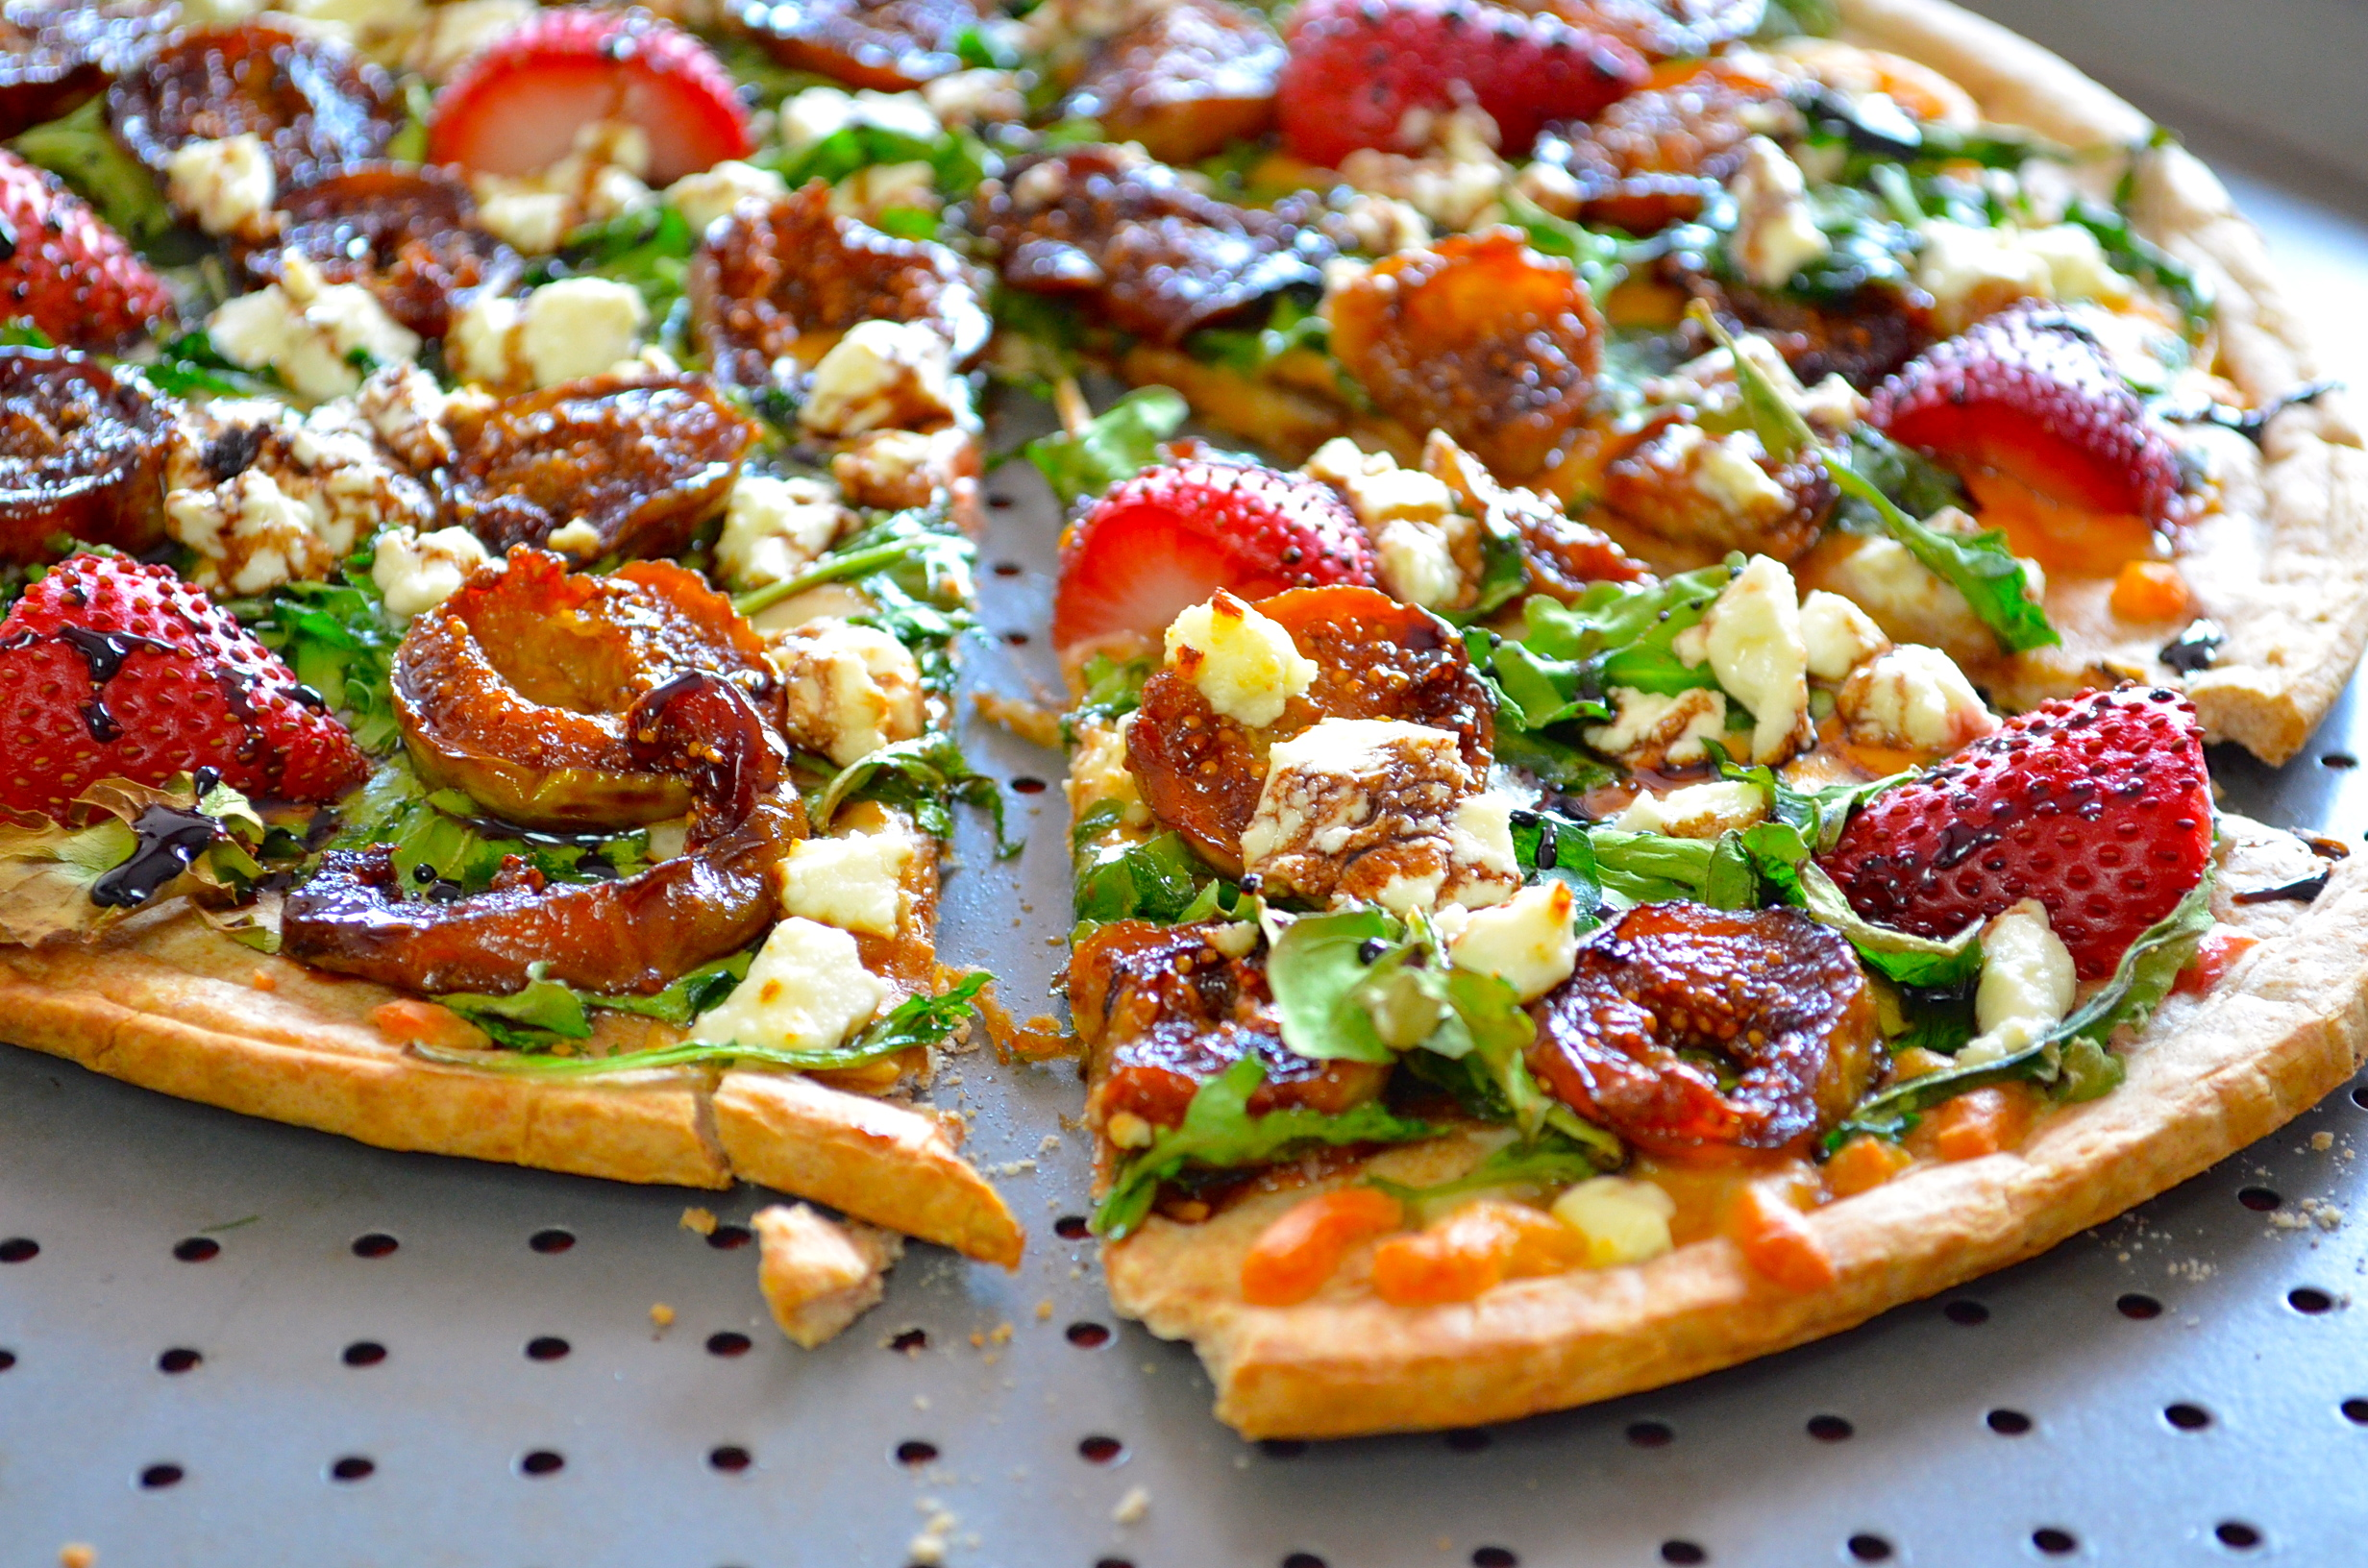 Caramelized Figs Goat Cheese Pizza With Balsamic Glaze May I Have That Recipe